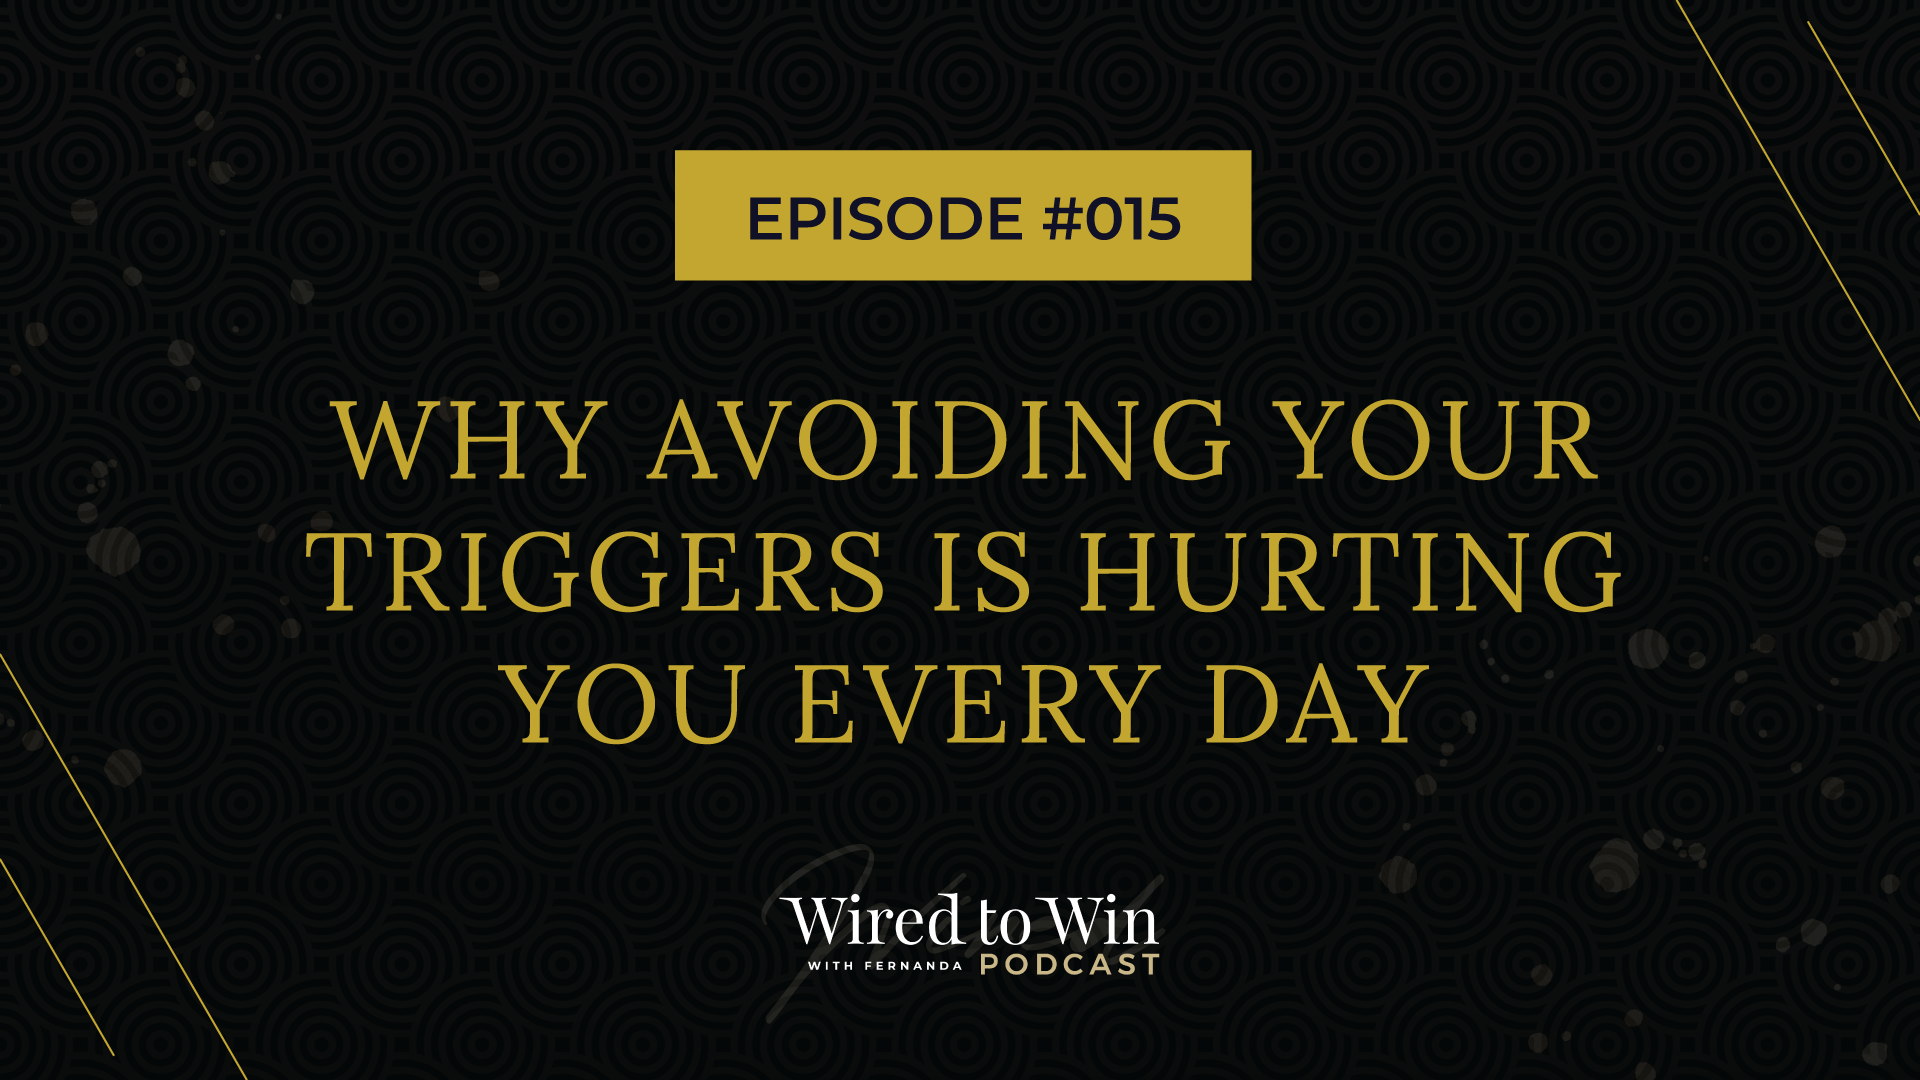 Why avoiding your triggers is hurting you every day